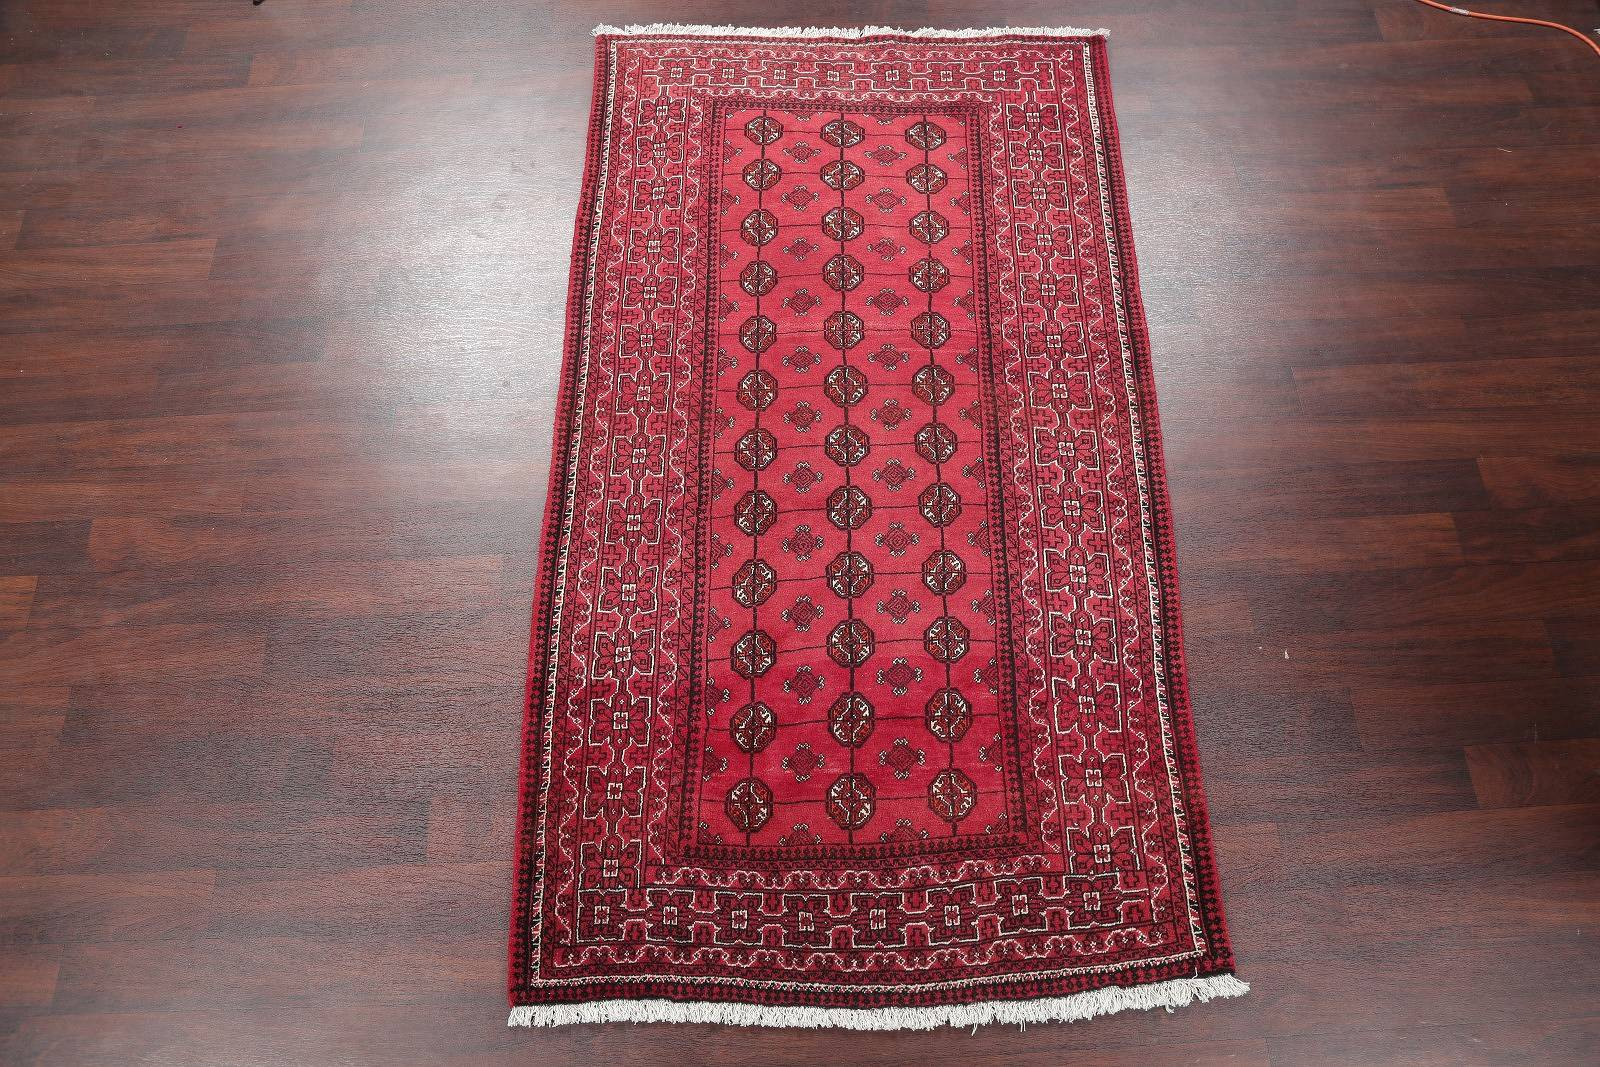 Geometric Red Balouch Bokhara Persian Hand-Knotted Runner Rug 4x8